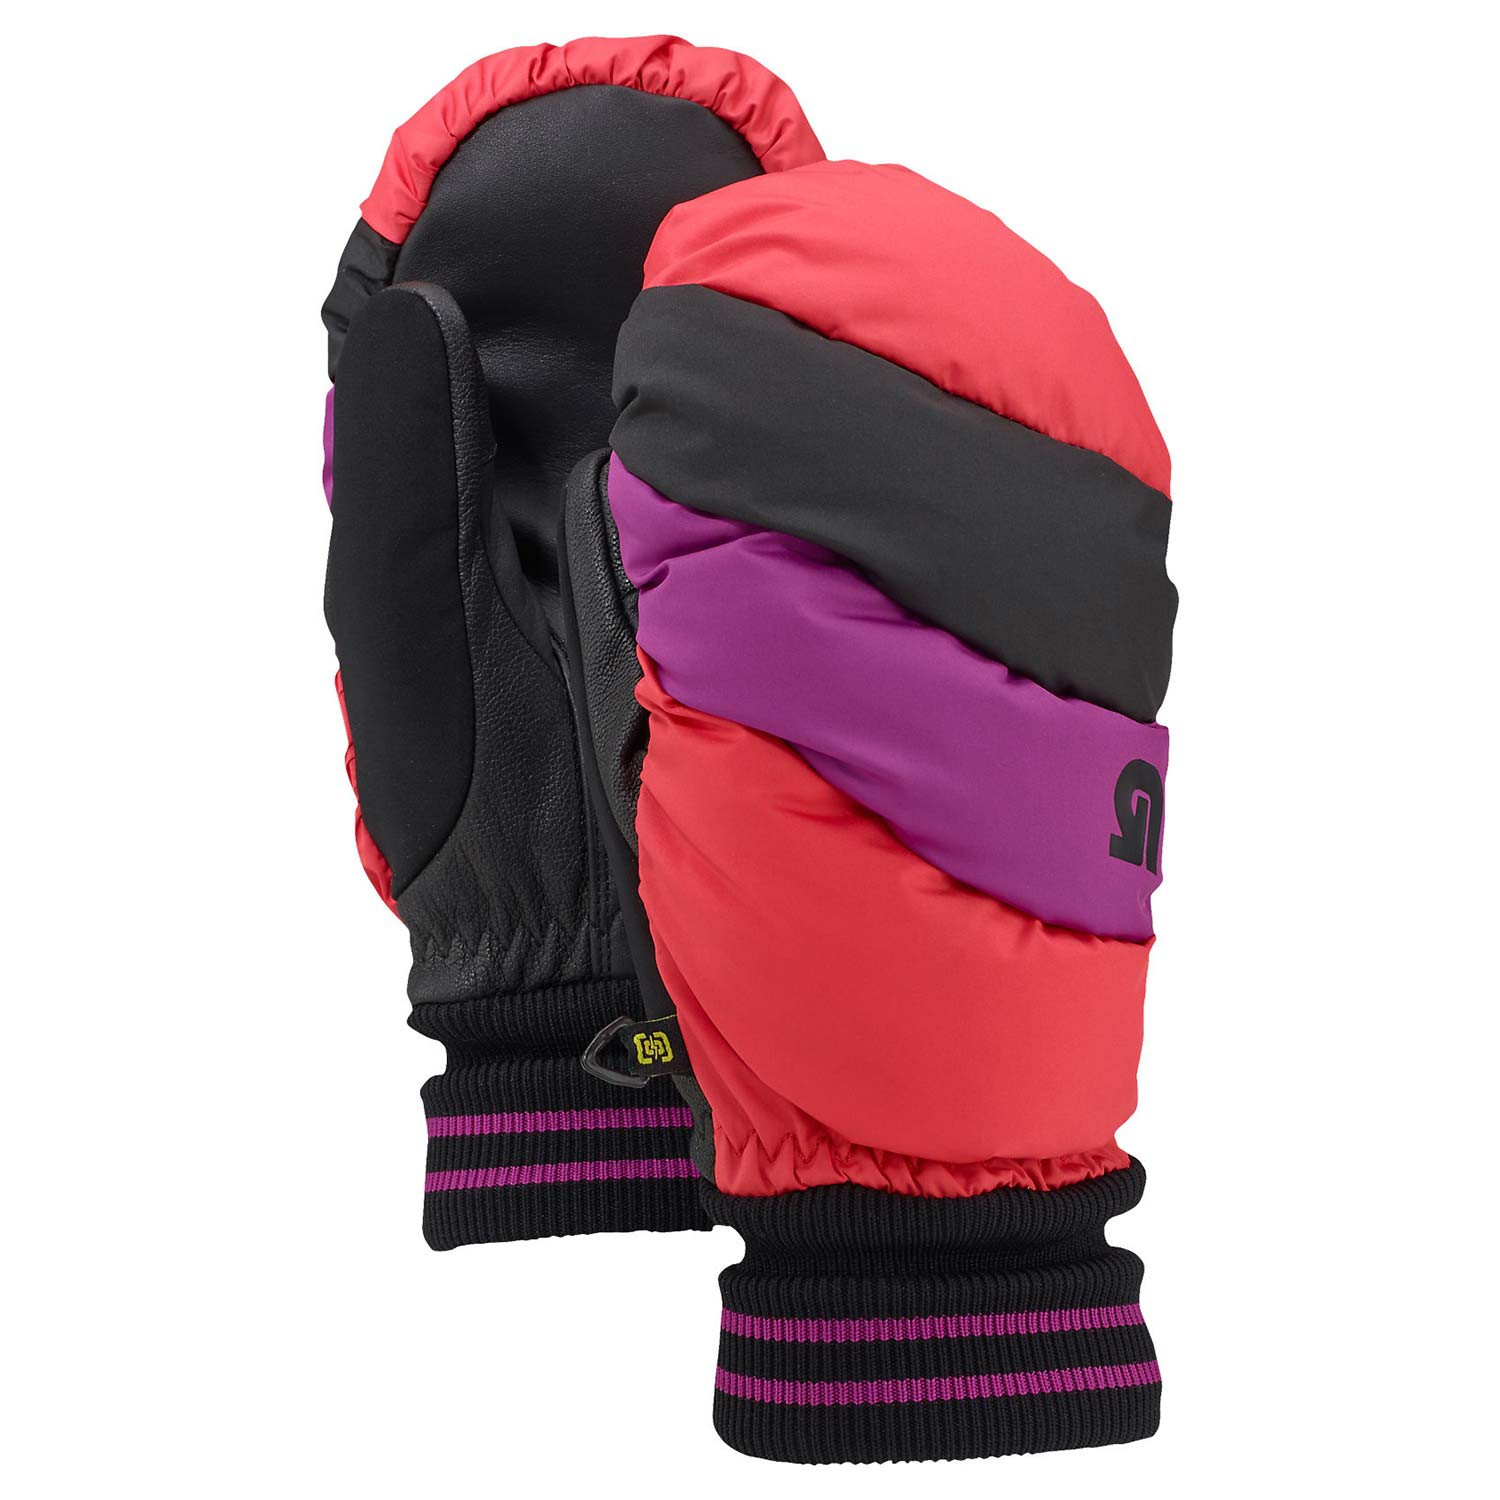 Rukavice Burton Wms Warmest Mitt tropic/grapeseed/true black